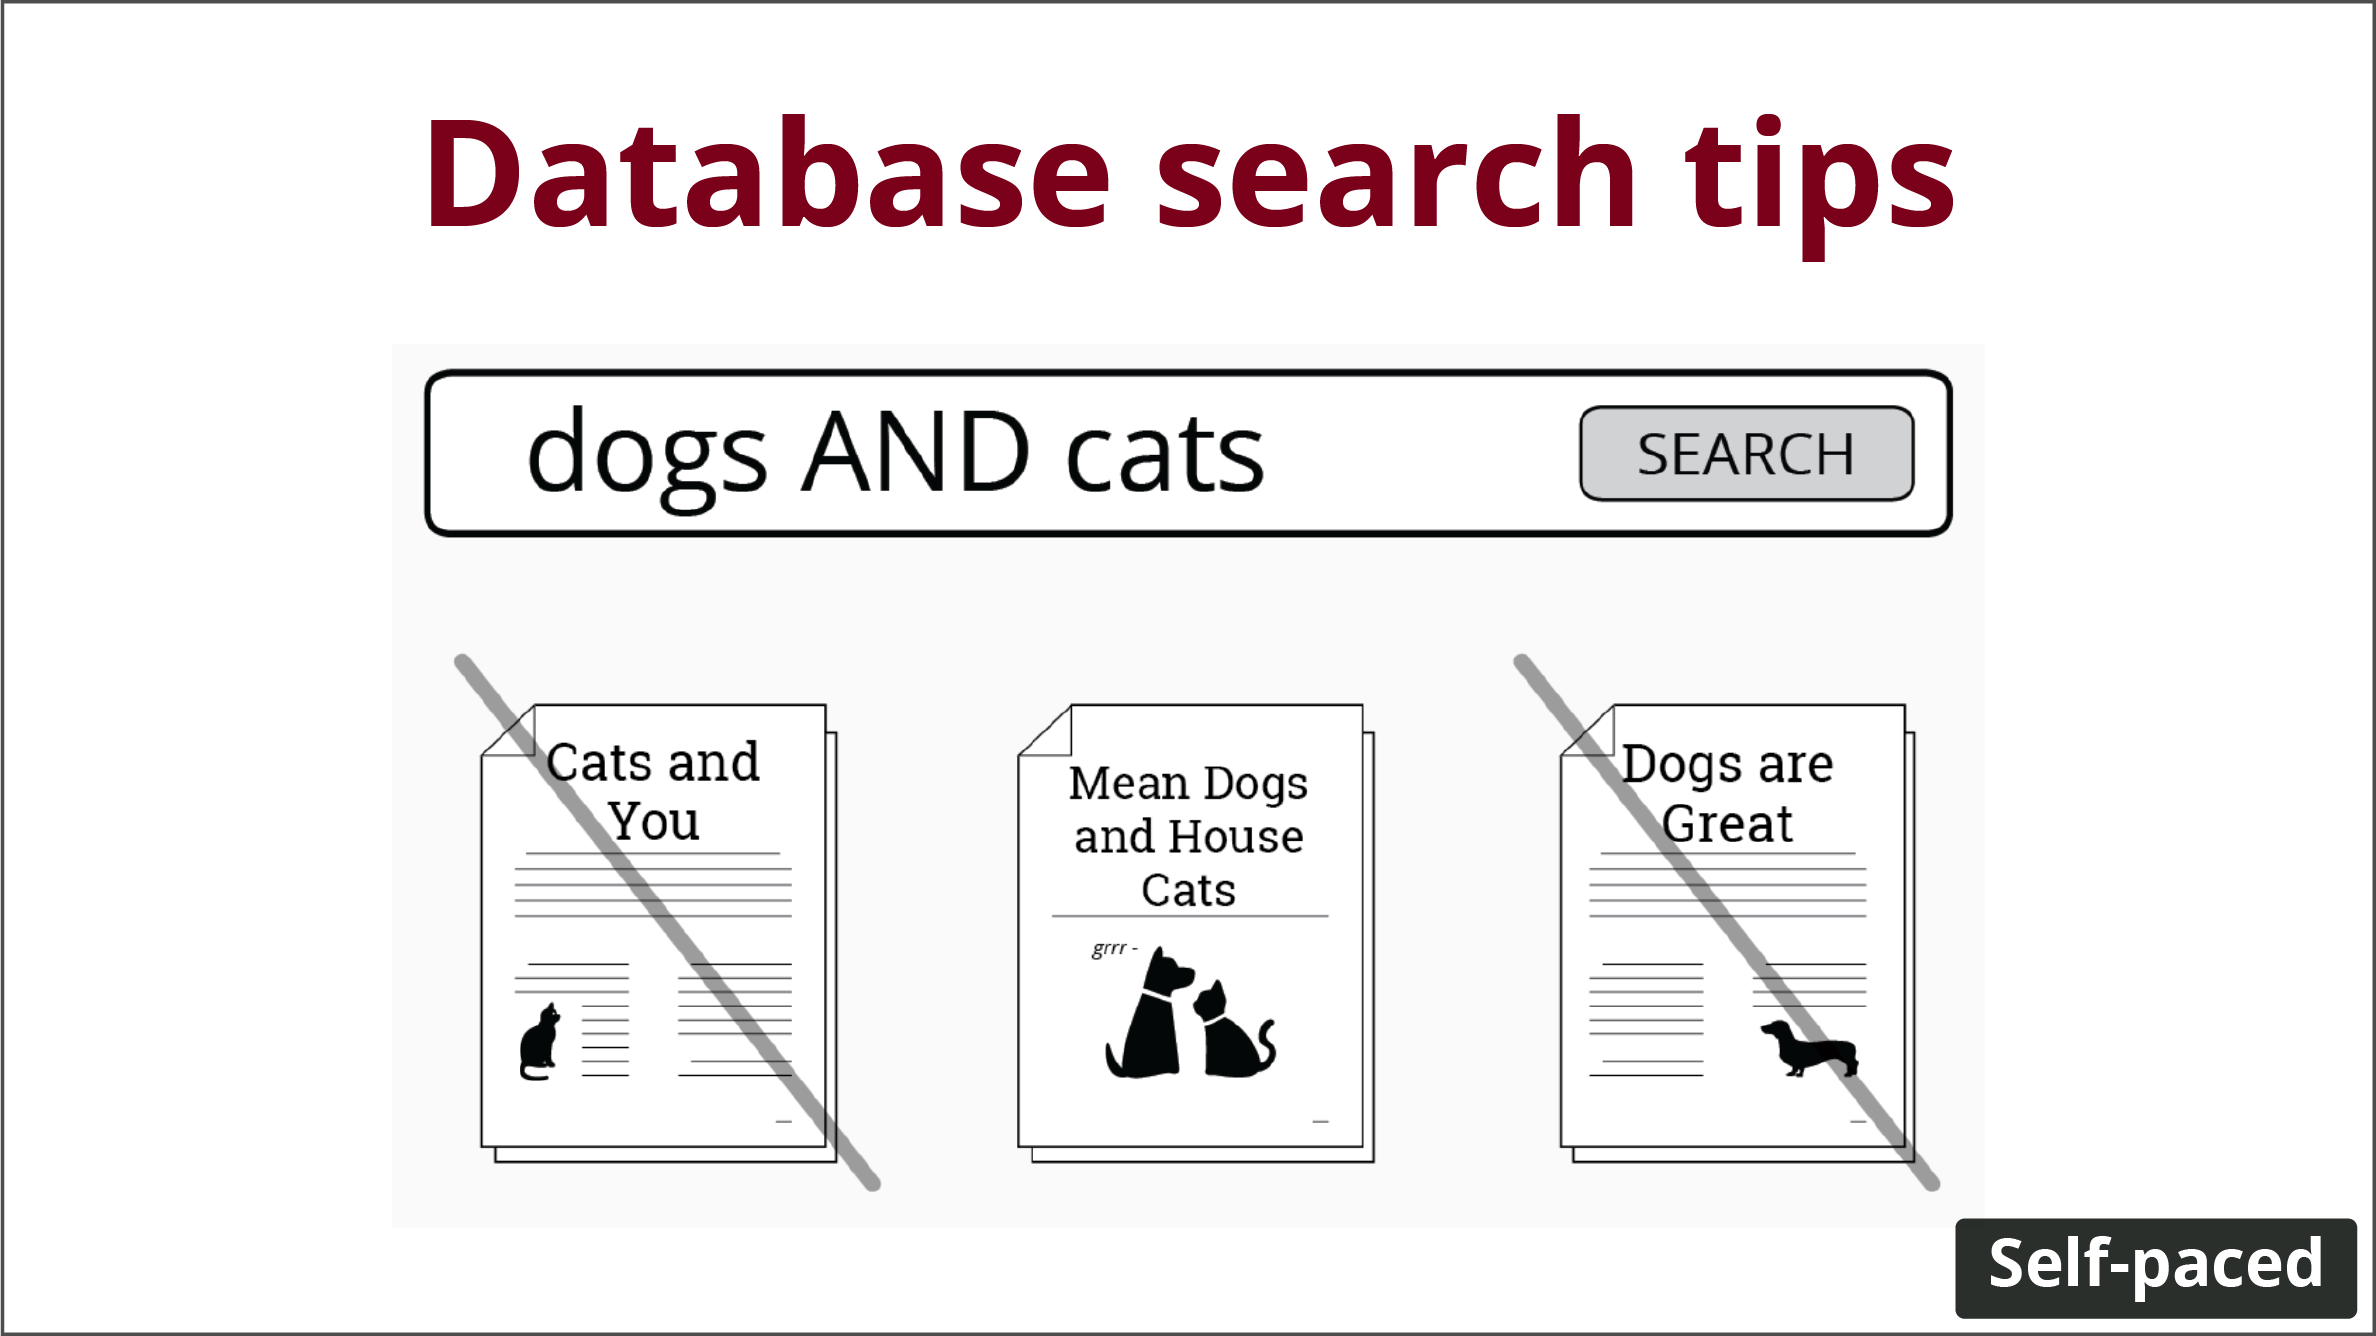 """""""dogs AND cats"""" as a search term. timestamp says """"Self-paced"""""""